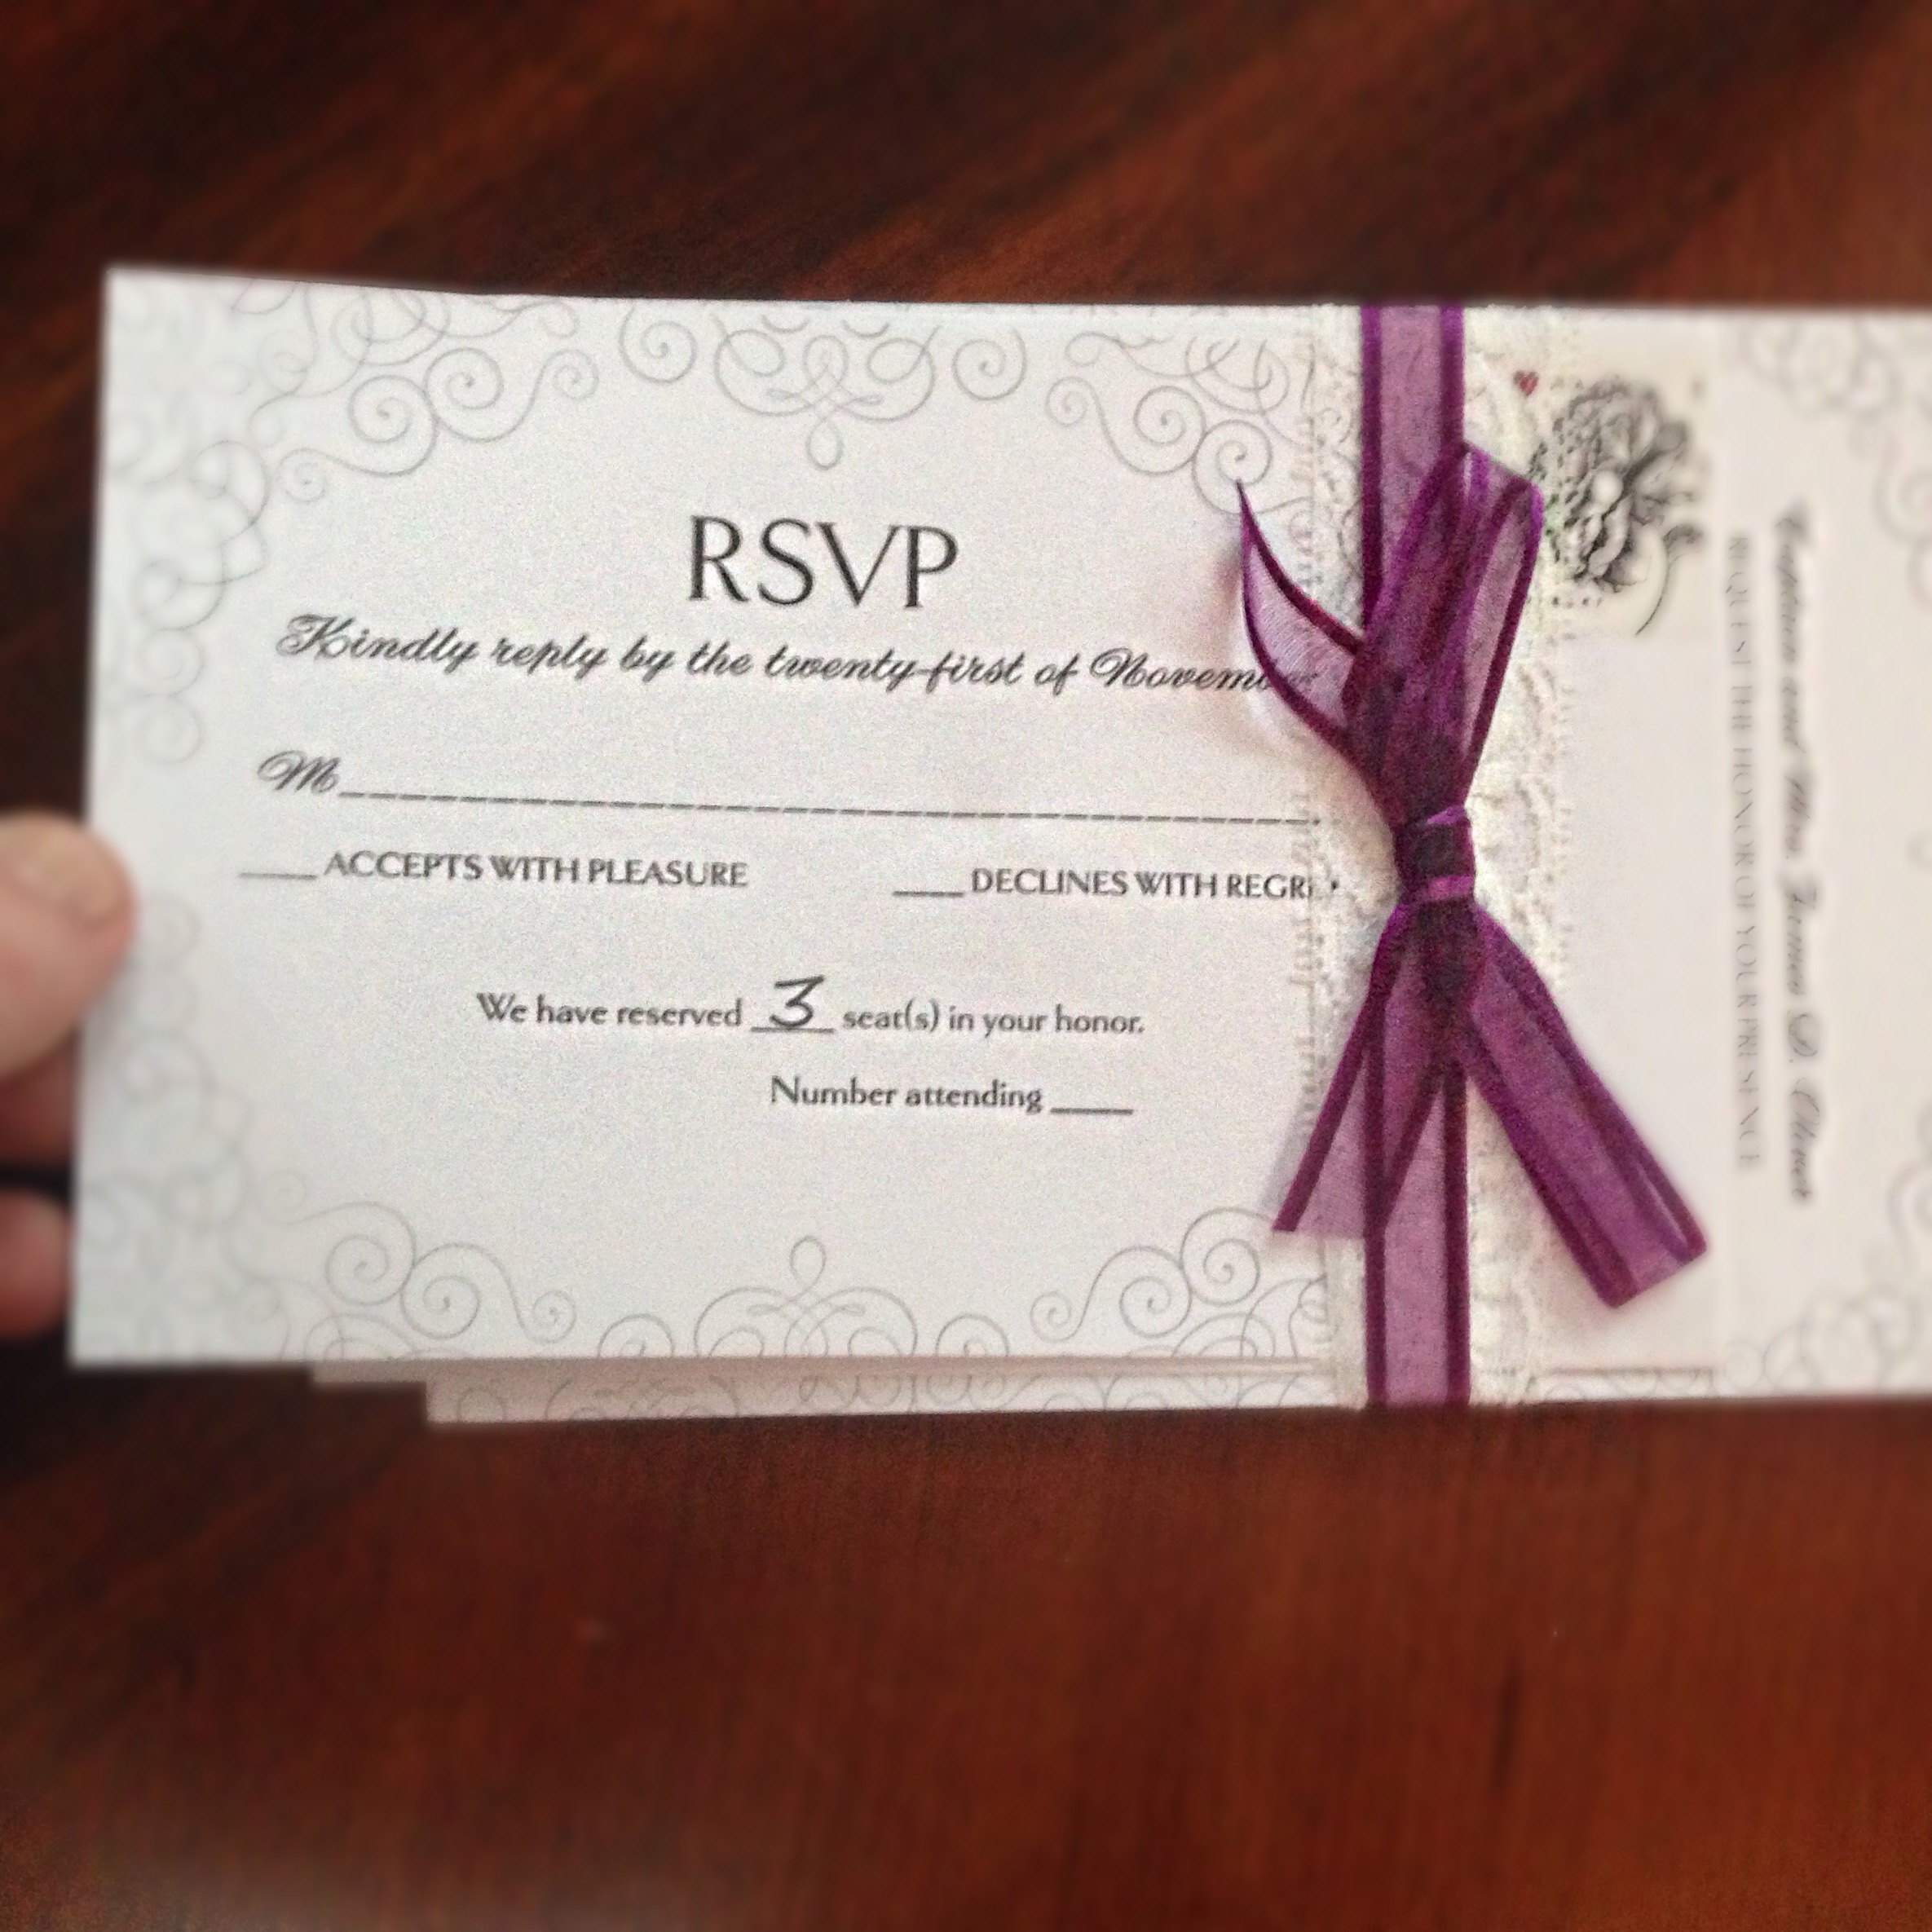 Wedding invitations rsvp cards what does the m mean for Rsvp stand for on an invitation